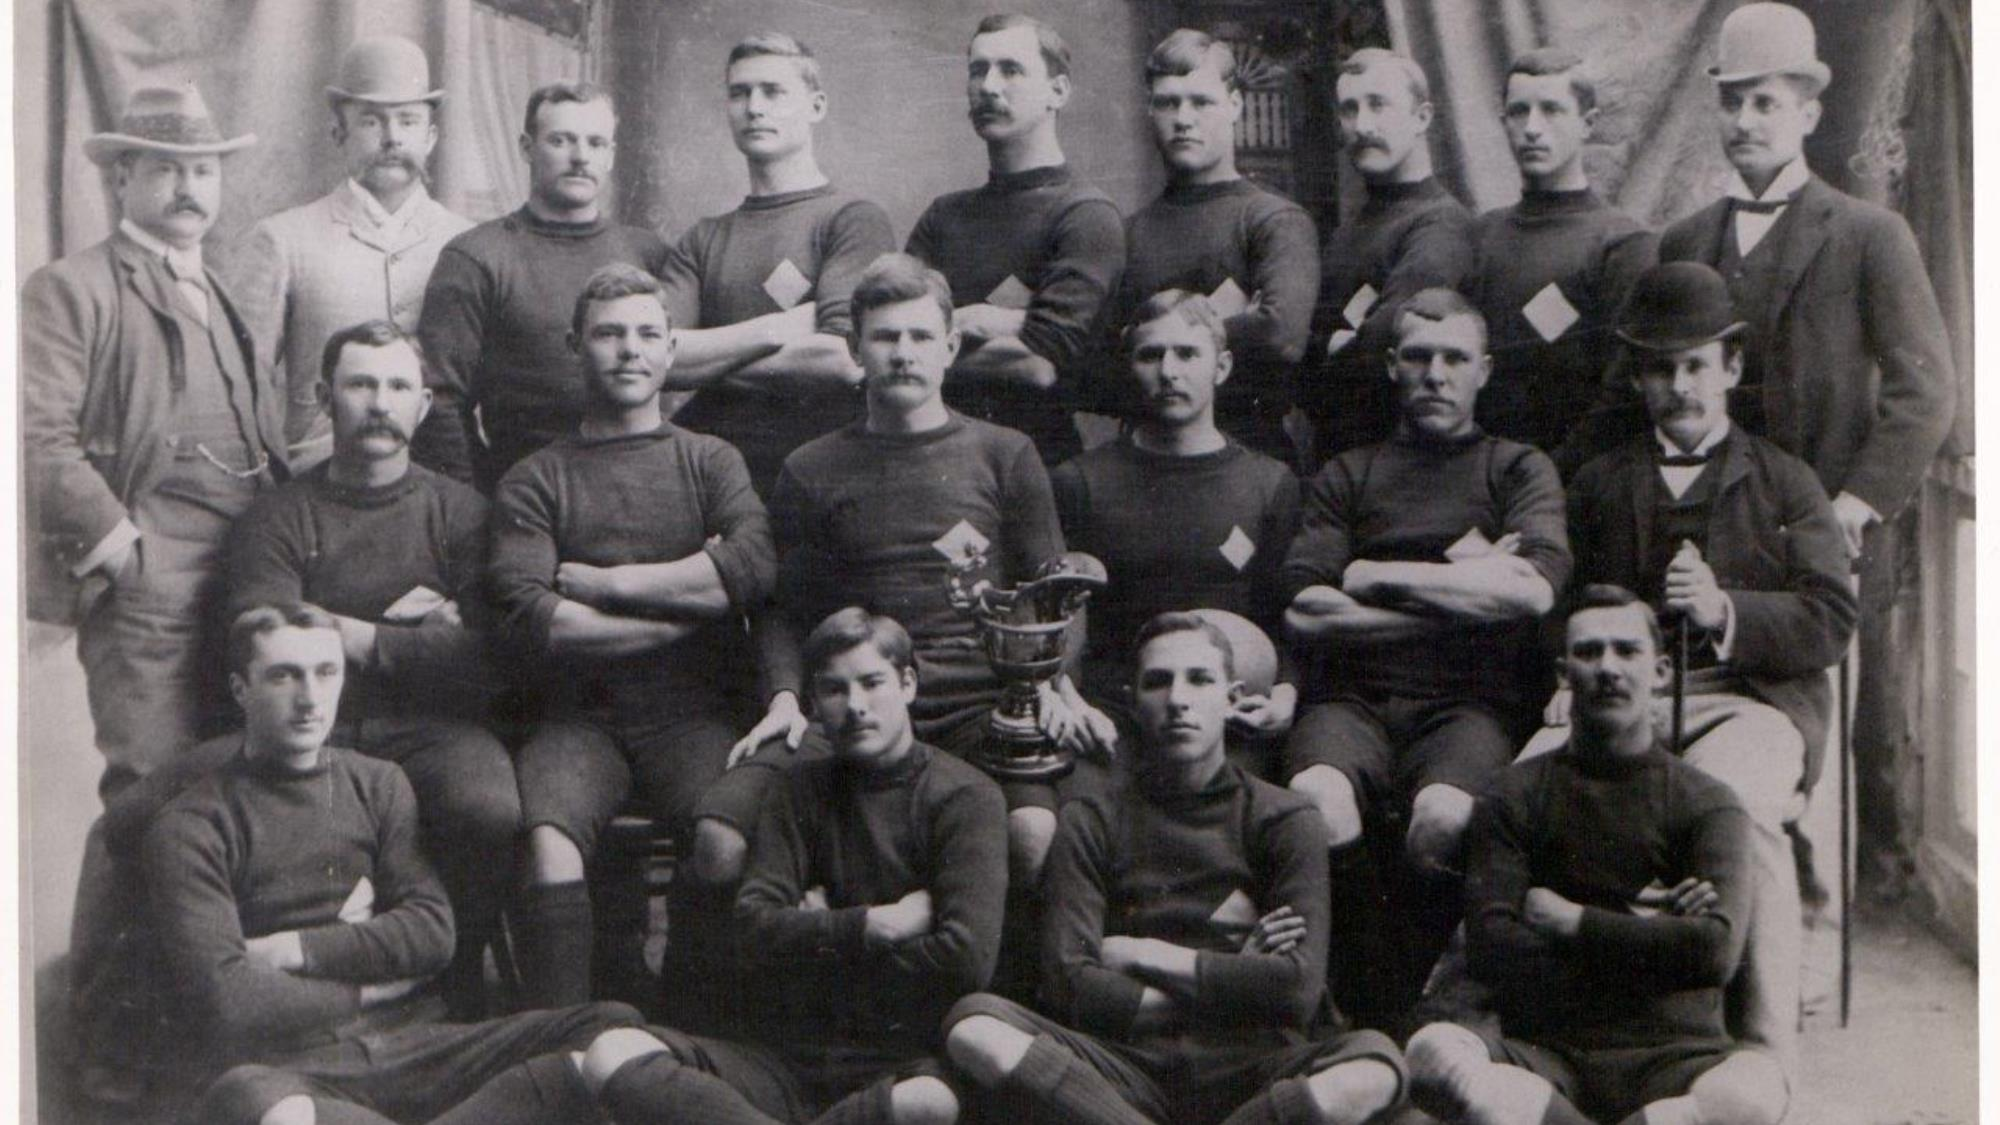 Lions gift Griquas the Currie Cup back in 1891